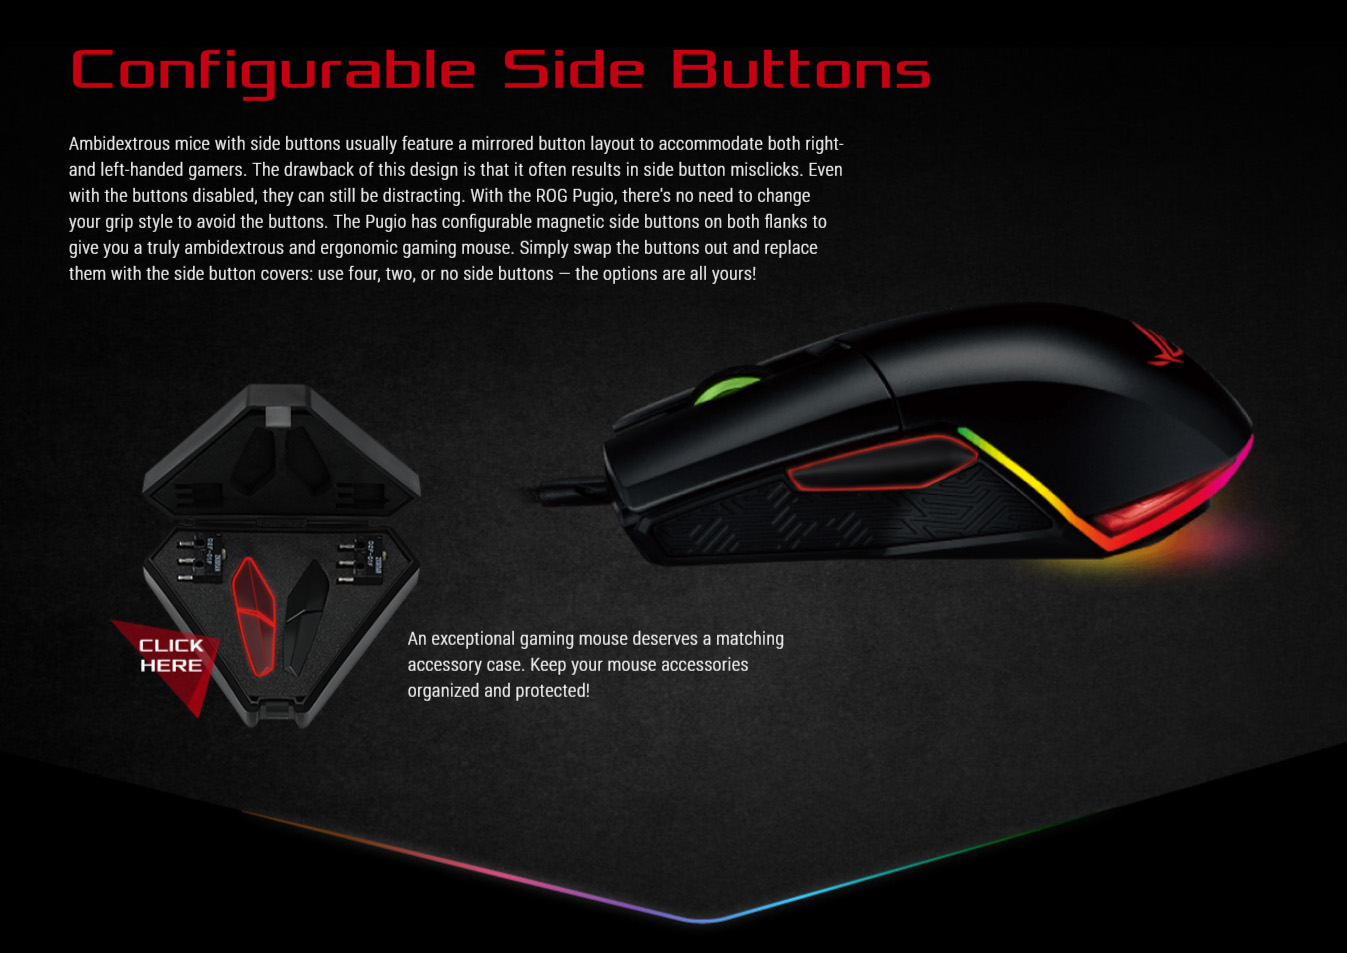 Asus ROG Pugio RGB Gaming Mouse